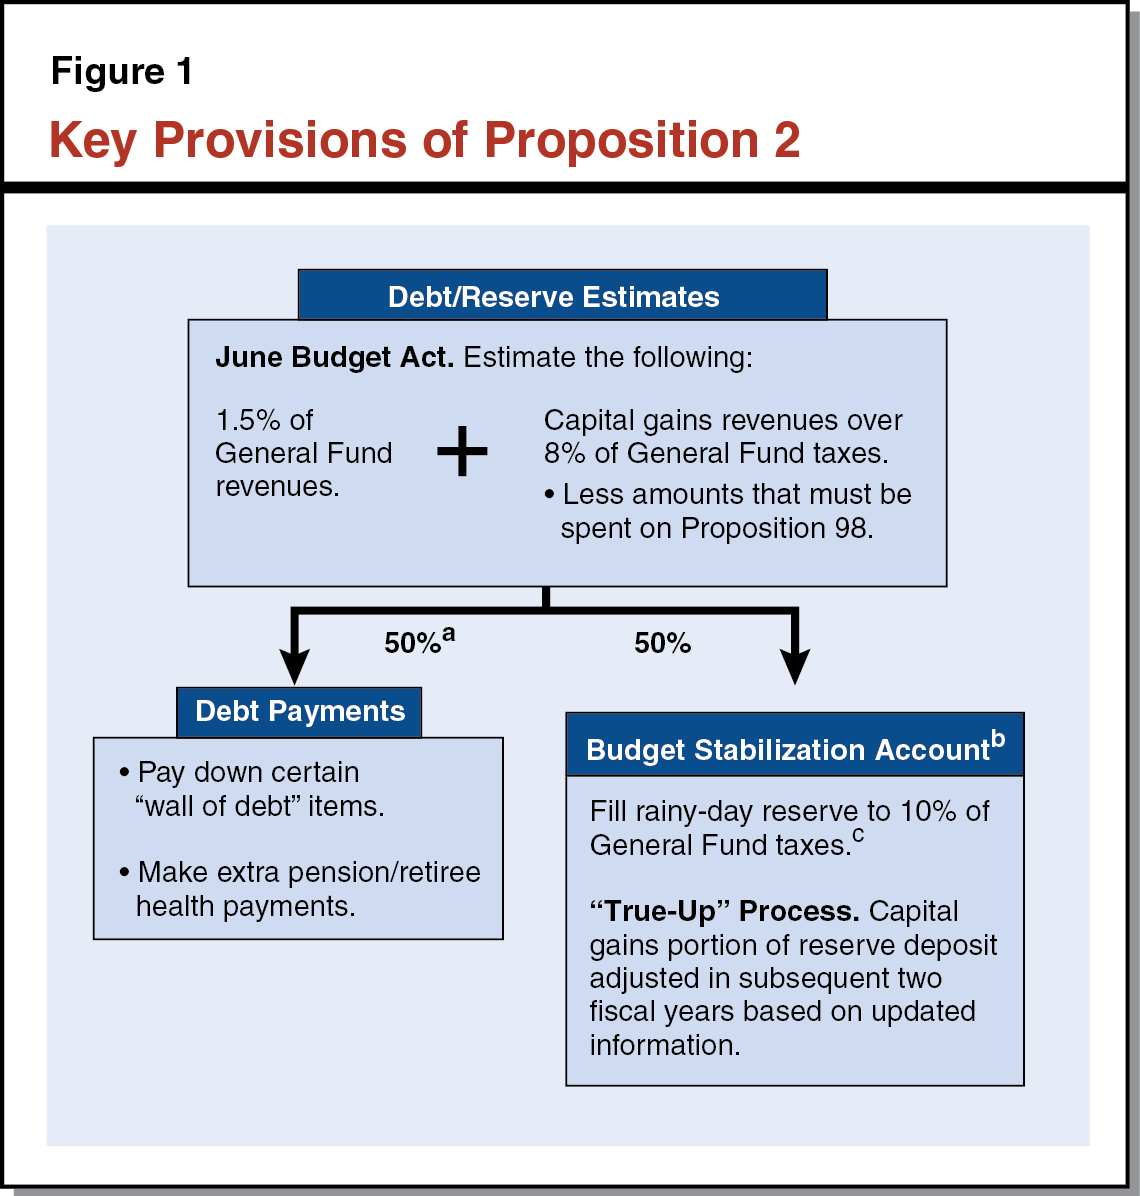 Figure 1 - Key Provisions of Proposition 2